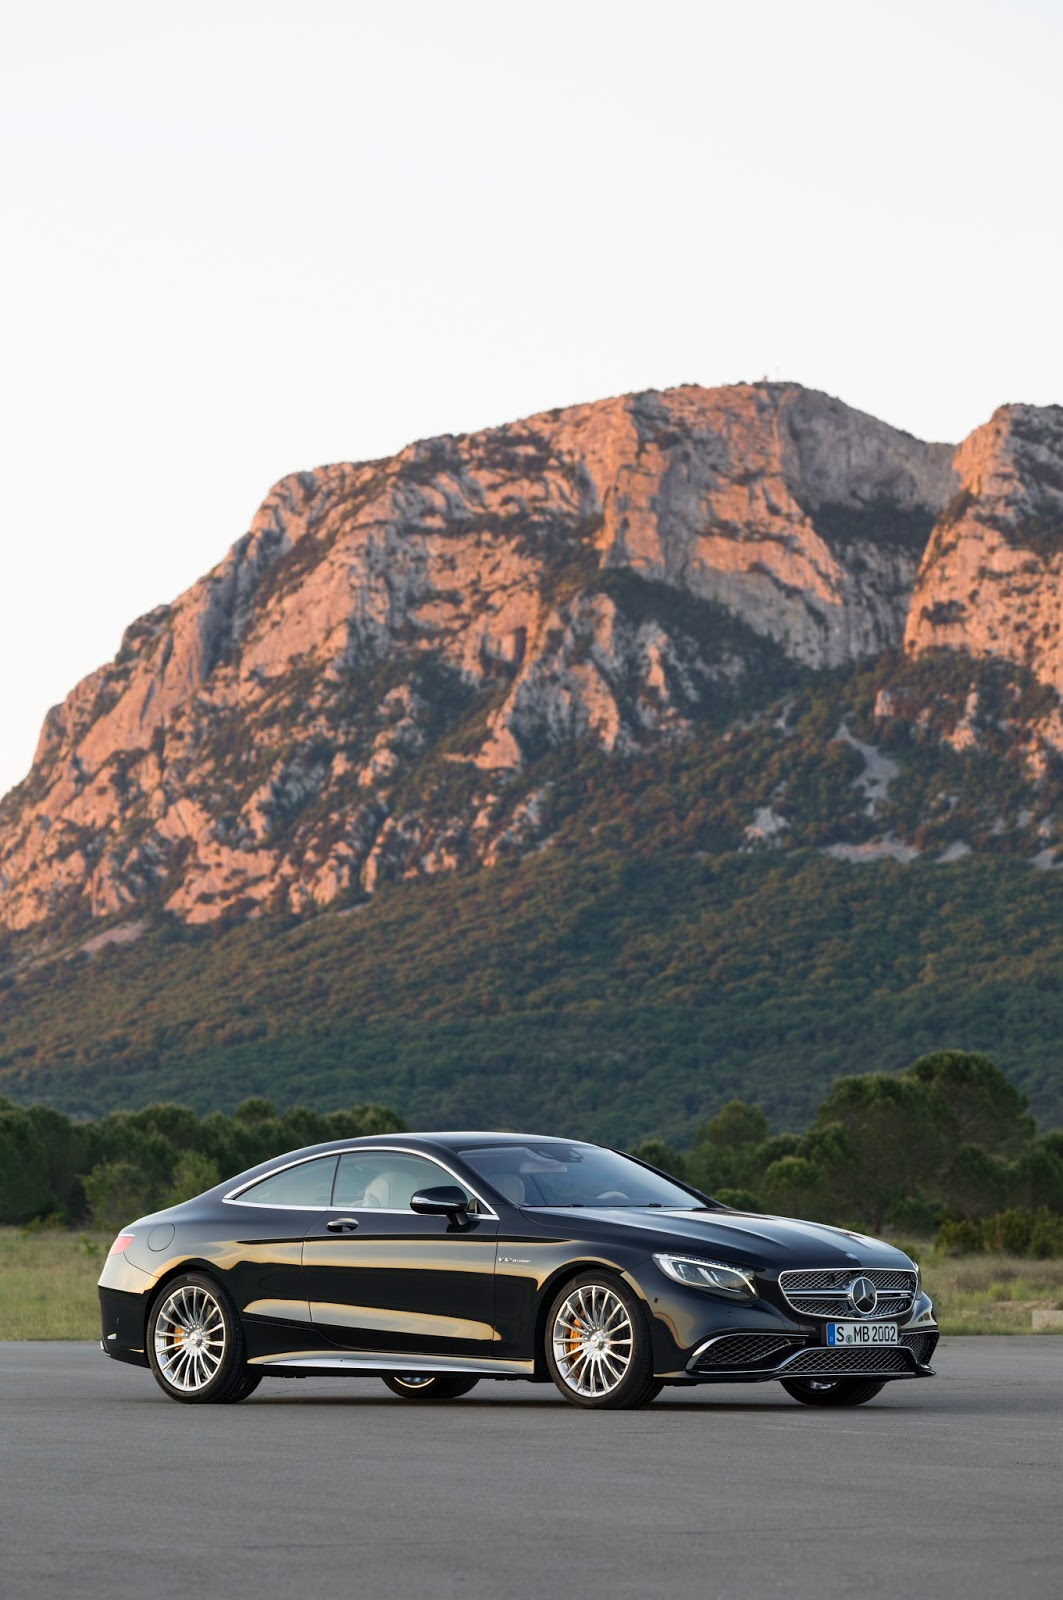 mercedes s65 amg coupe used to be cl65 amg cars life cars fashion lifestyle blog. Black Bedroom Furniture Sets. Home Design Ideas